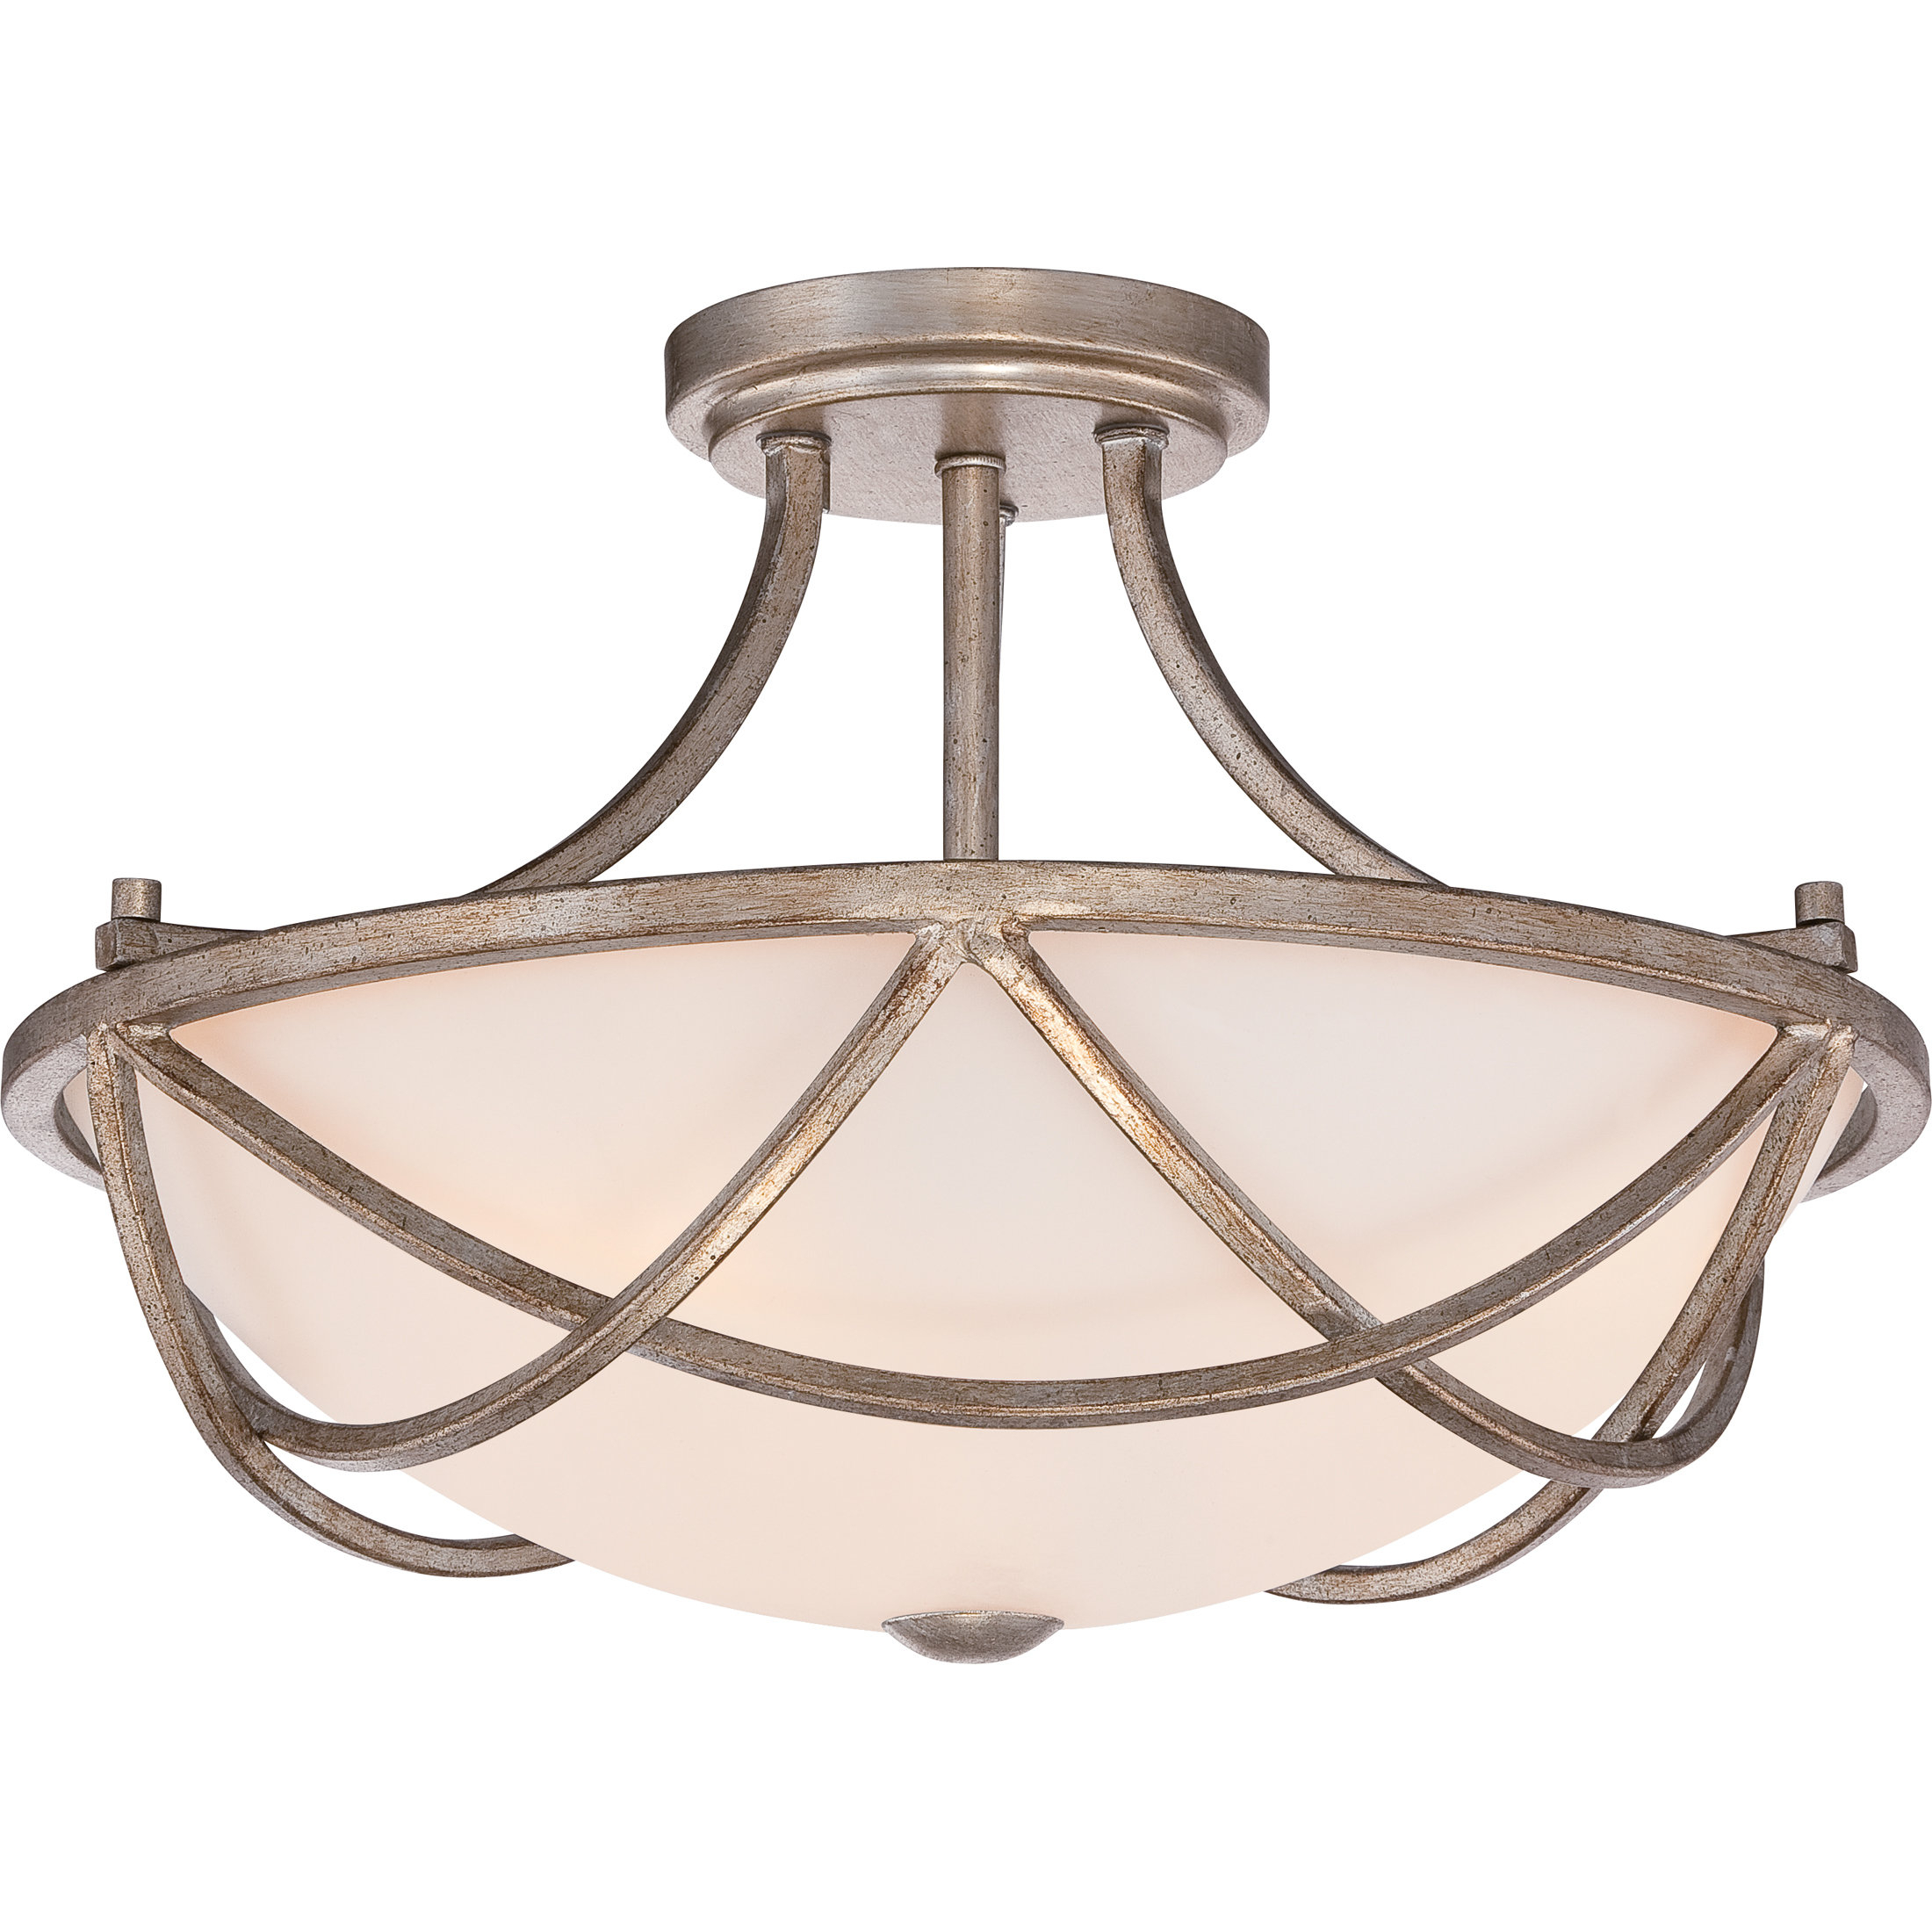 Widely Used Newent 3 Light Single Bowl Pendants Inside Hedda 2 Light Single Bowl Pendant (Gallery 12 of 20)